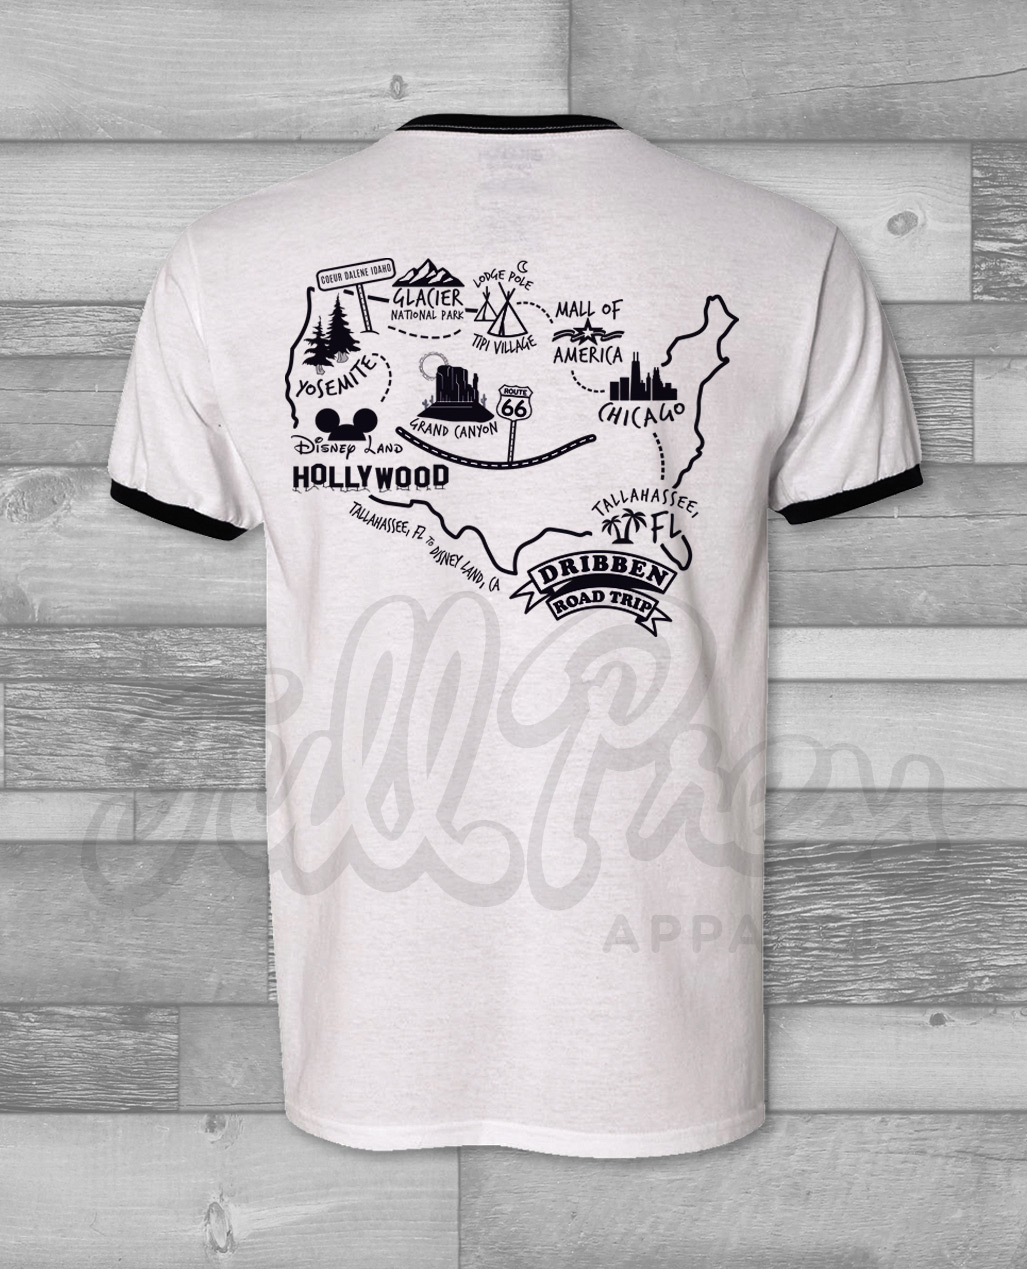 A Family Vacation T Shirt Design With Fun Vintage Flare